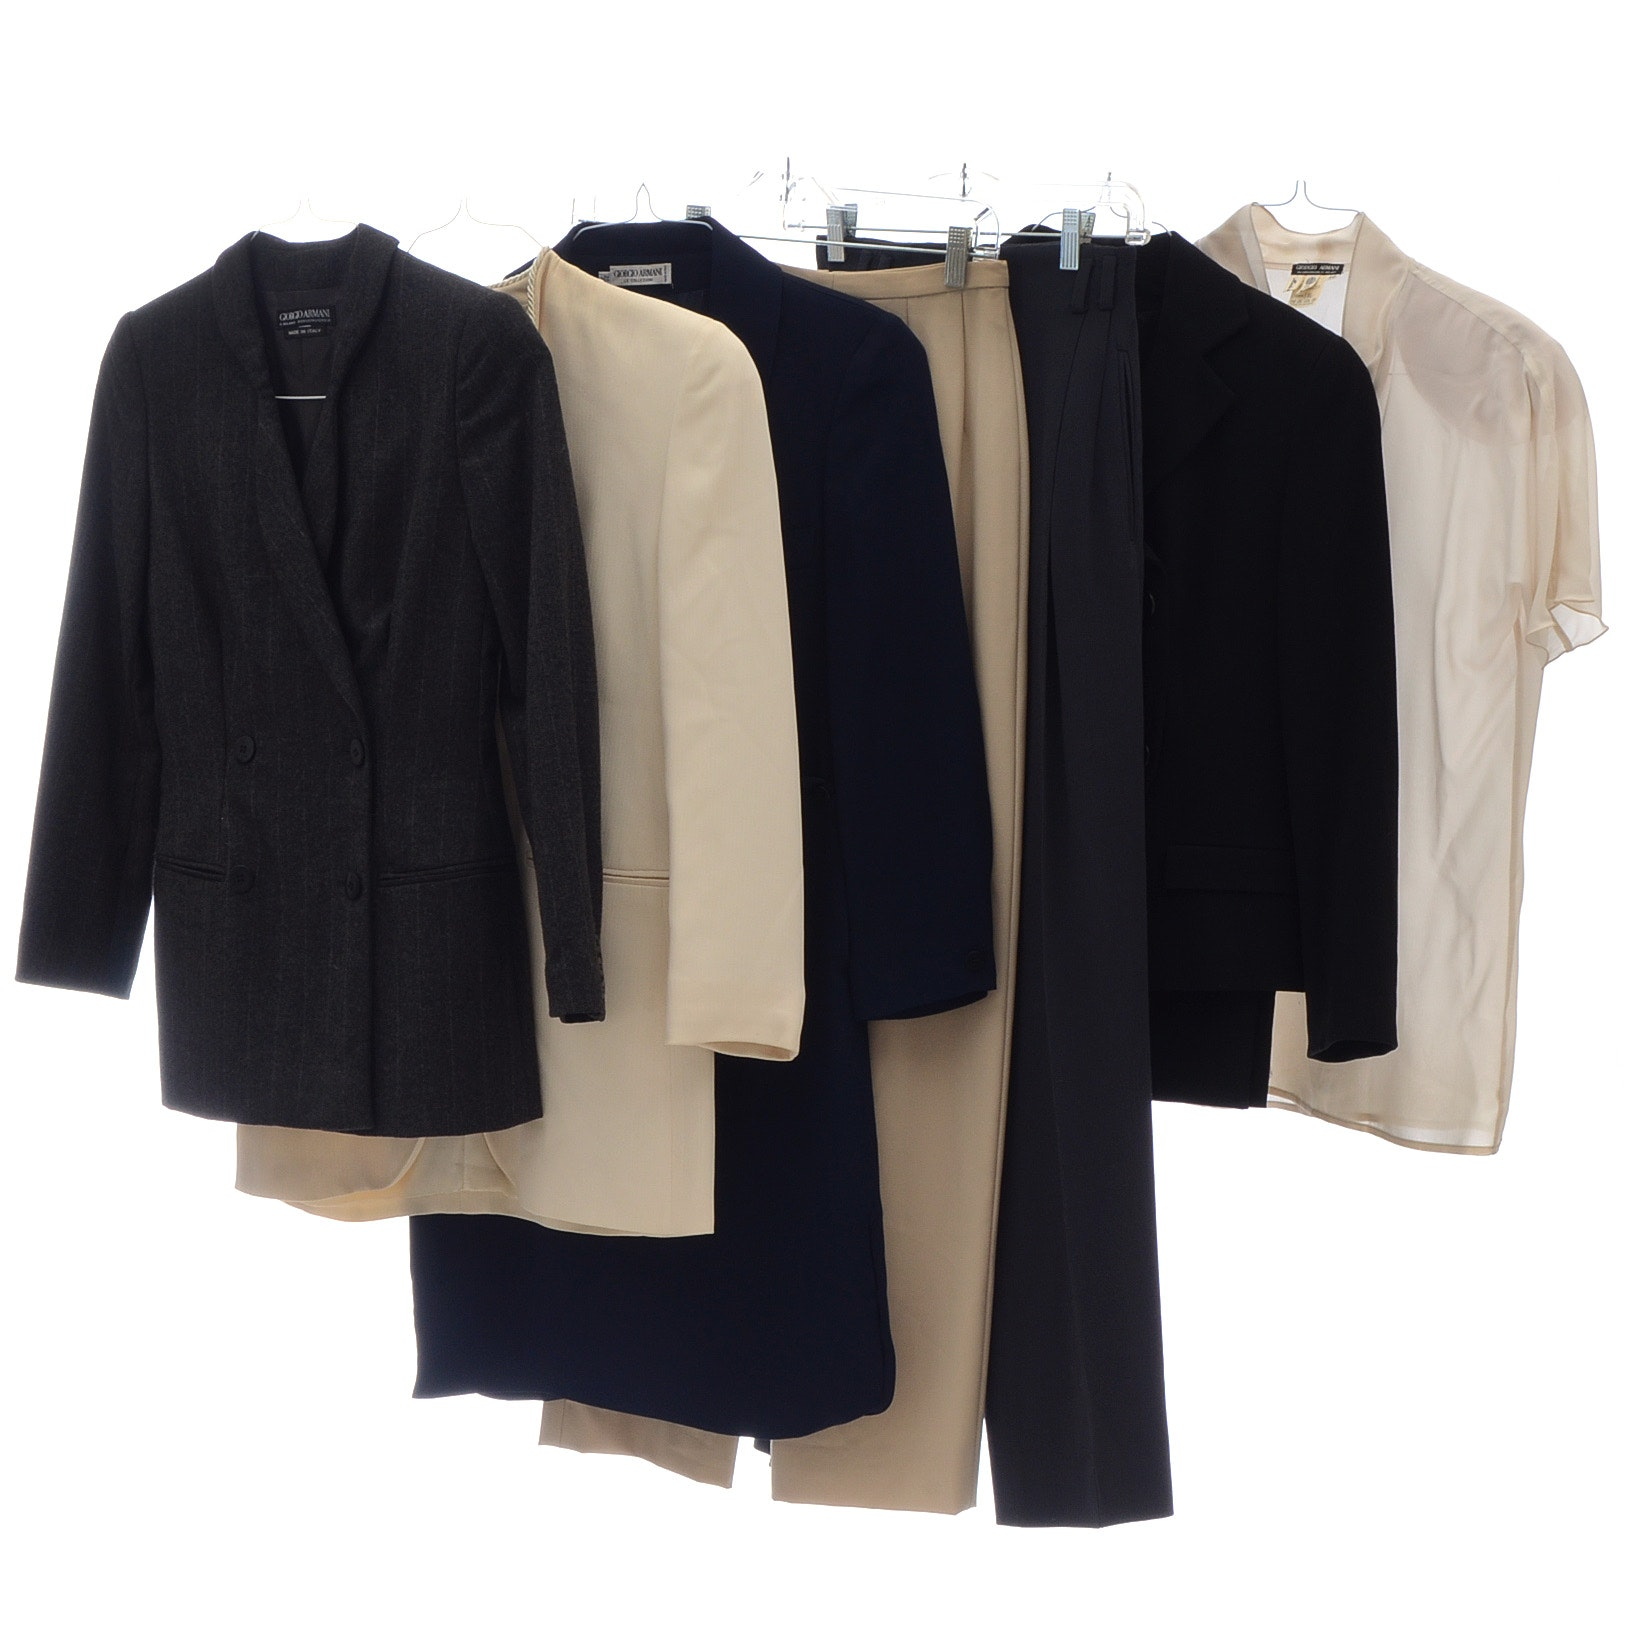 Assortment of Giorgio Armani Work Wear